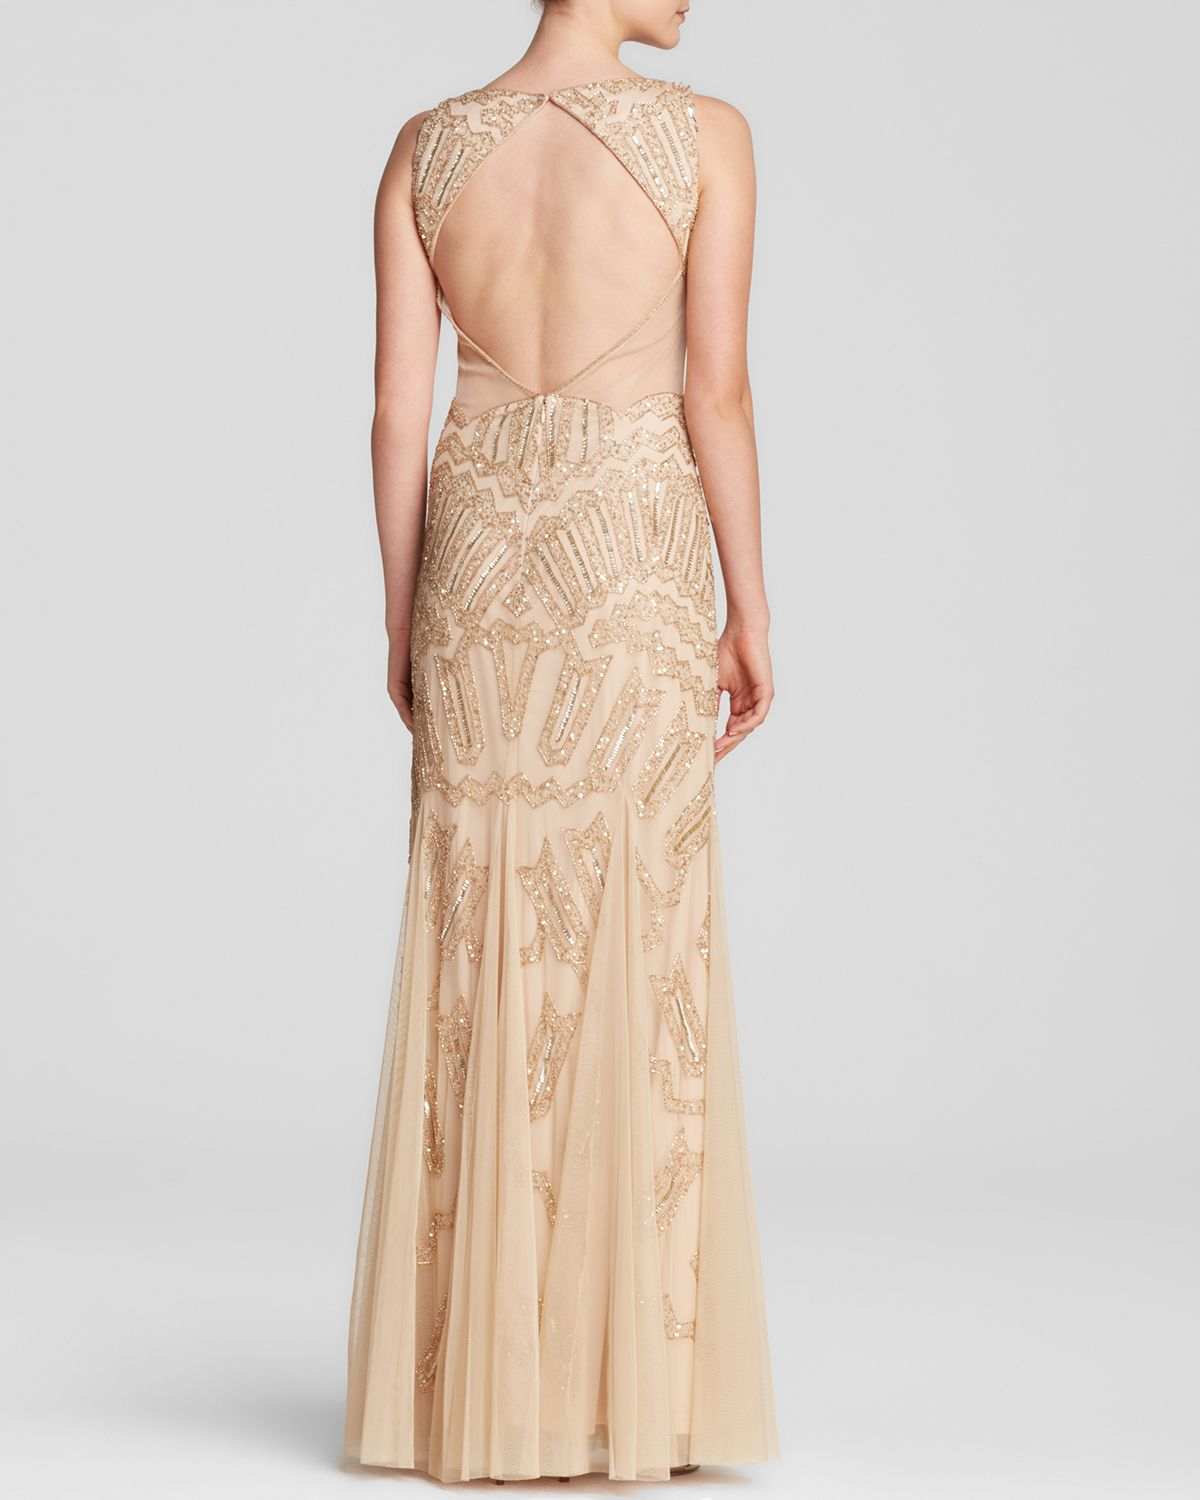 Adrianna Papell Gown - Deep V-Neck Beaded Illusion Panel Open Back ...